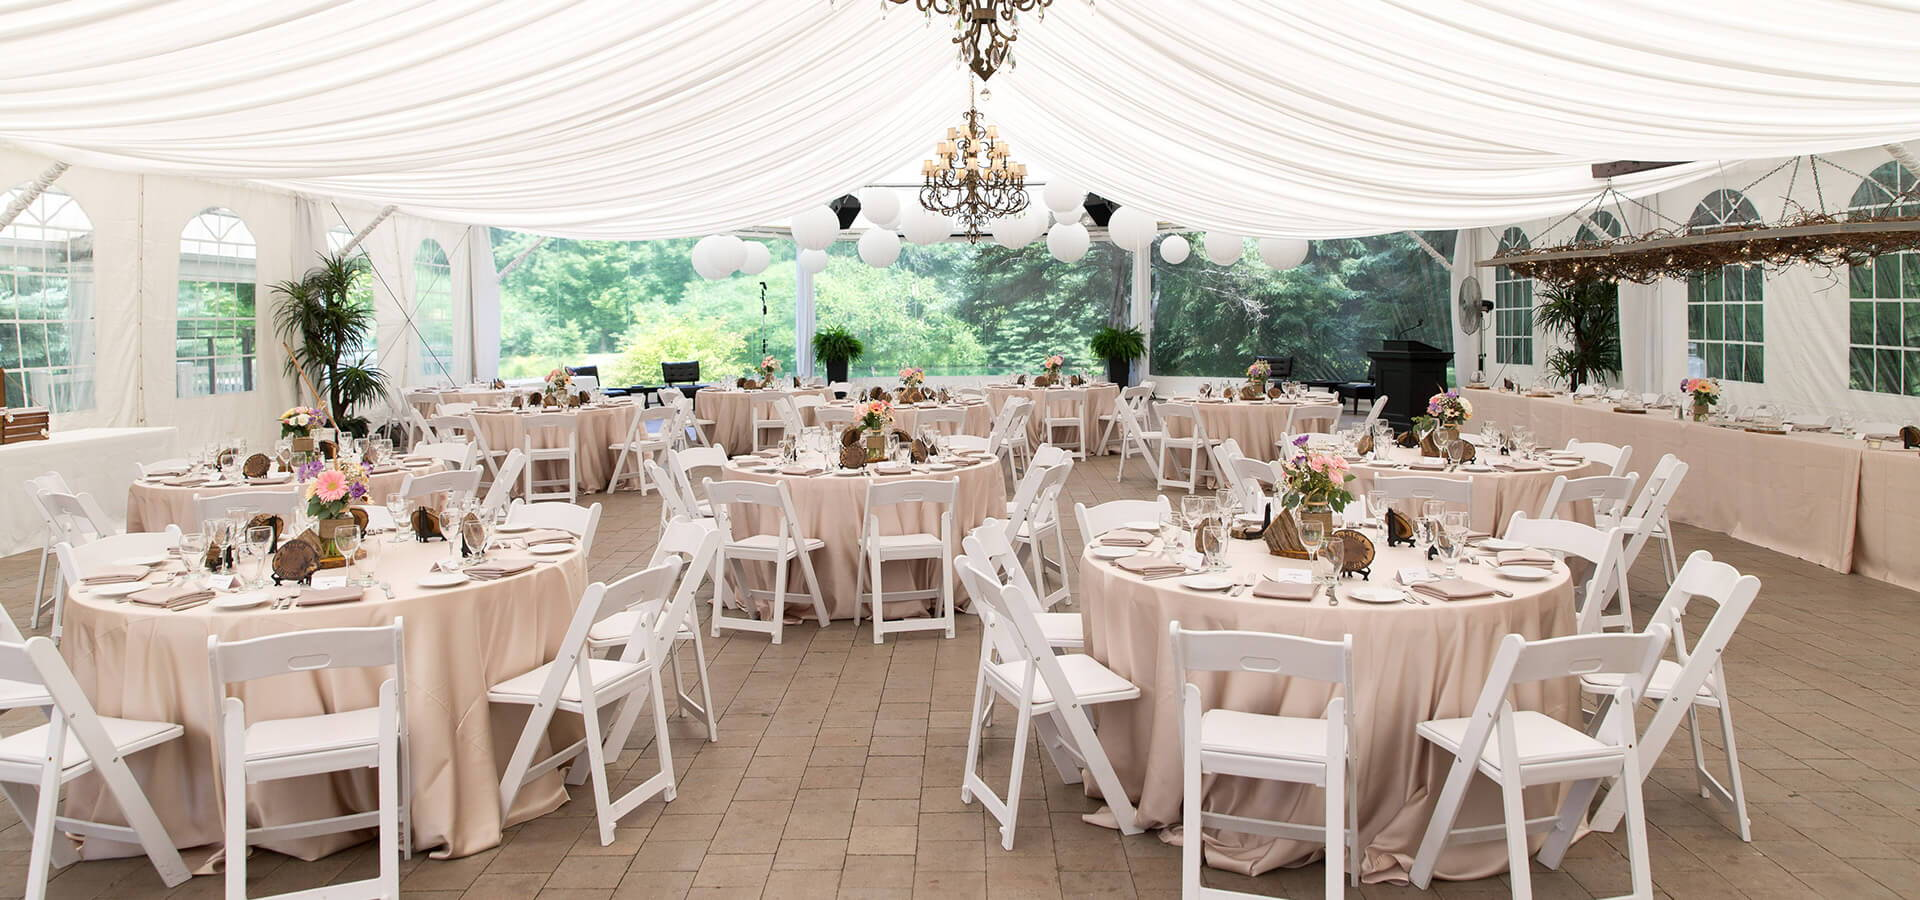 Hero image for Victoria and Daniel's Woodland Whimsy Wedding at Nestleton Waters Inn